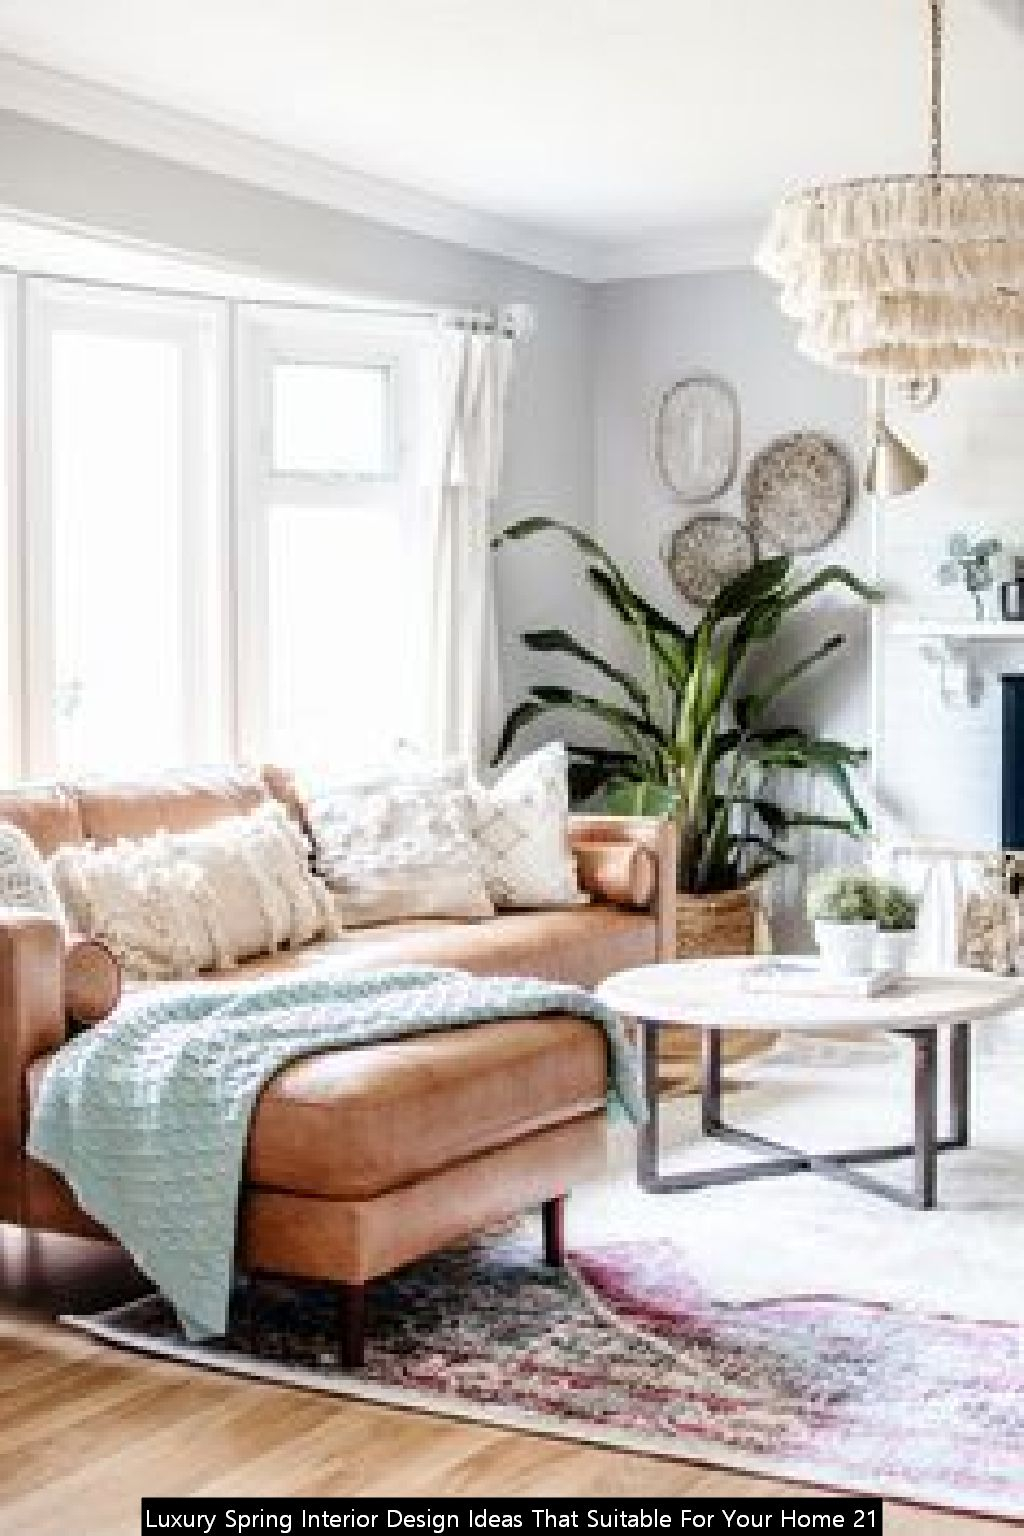 Luxury Spring Interior Design Ideas That Suitable For Your Home 21